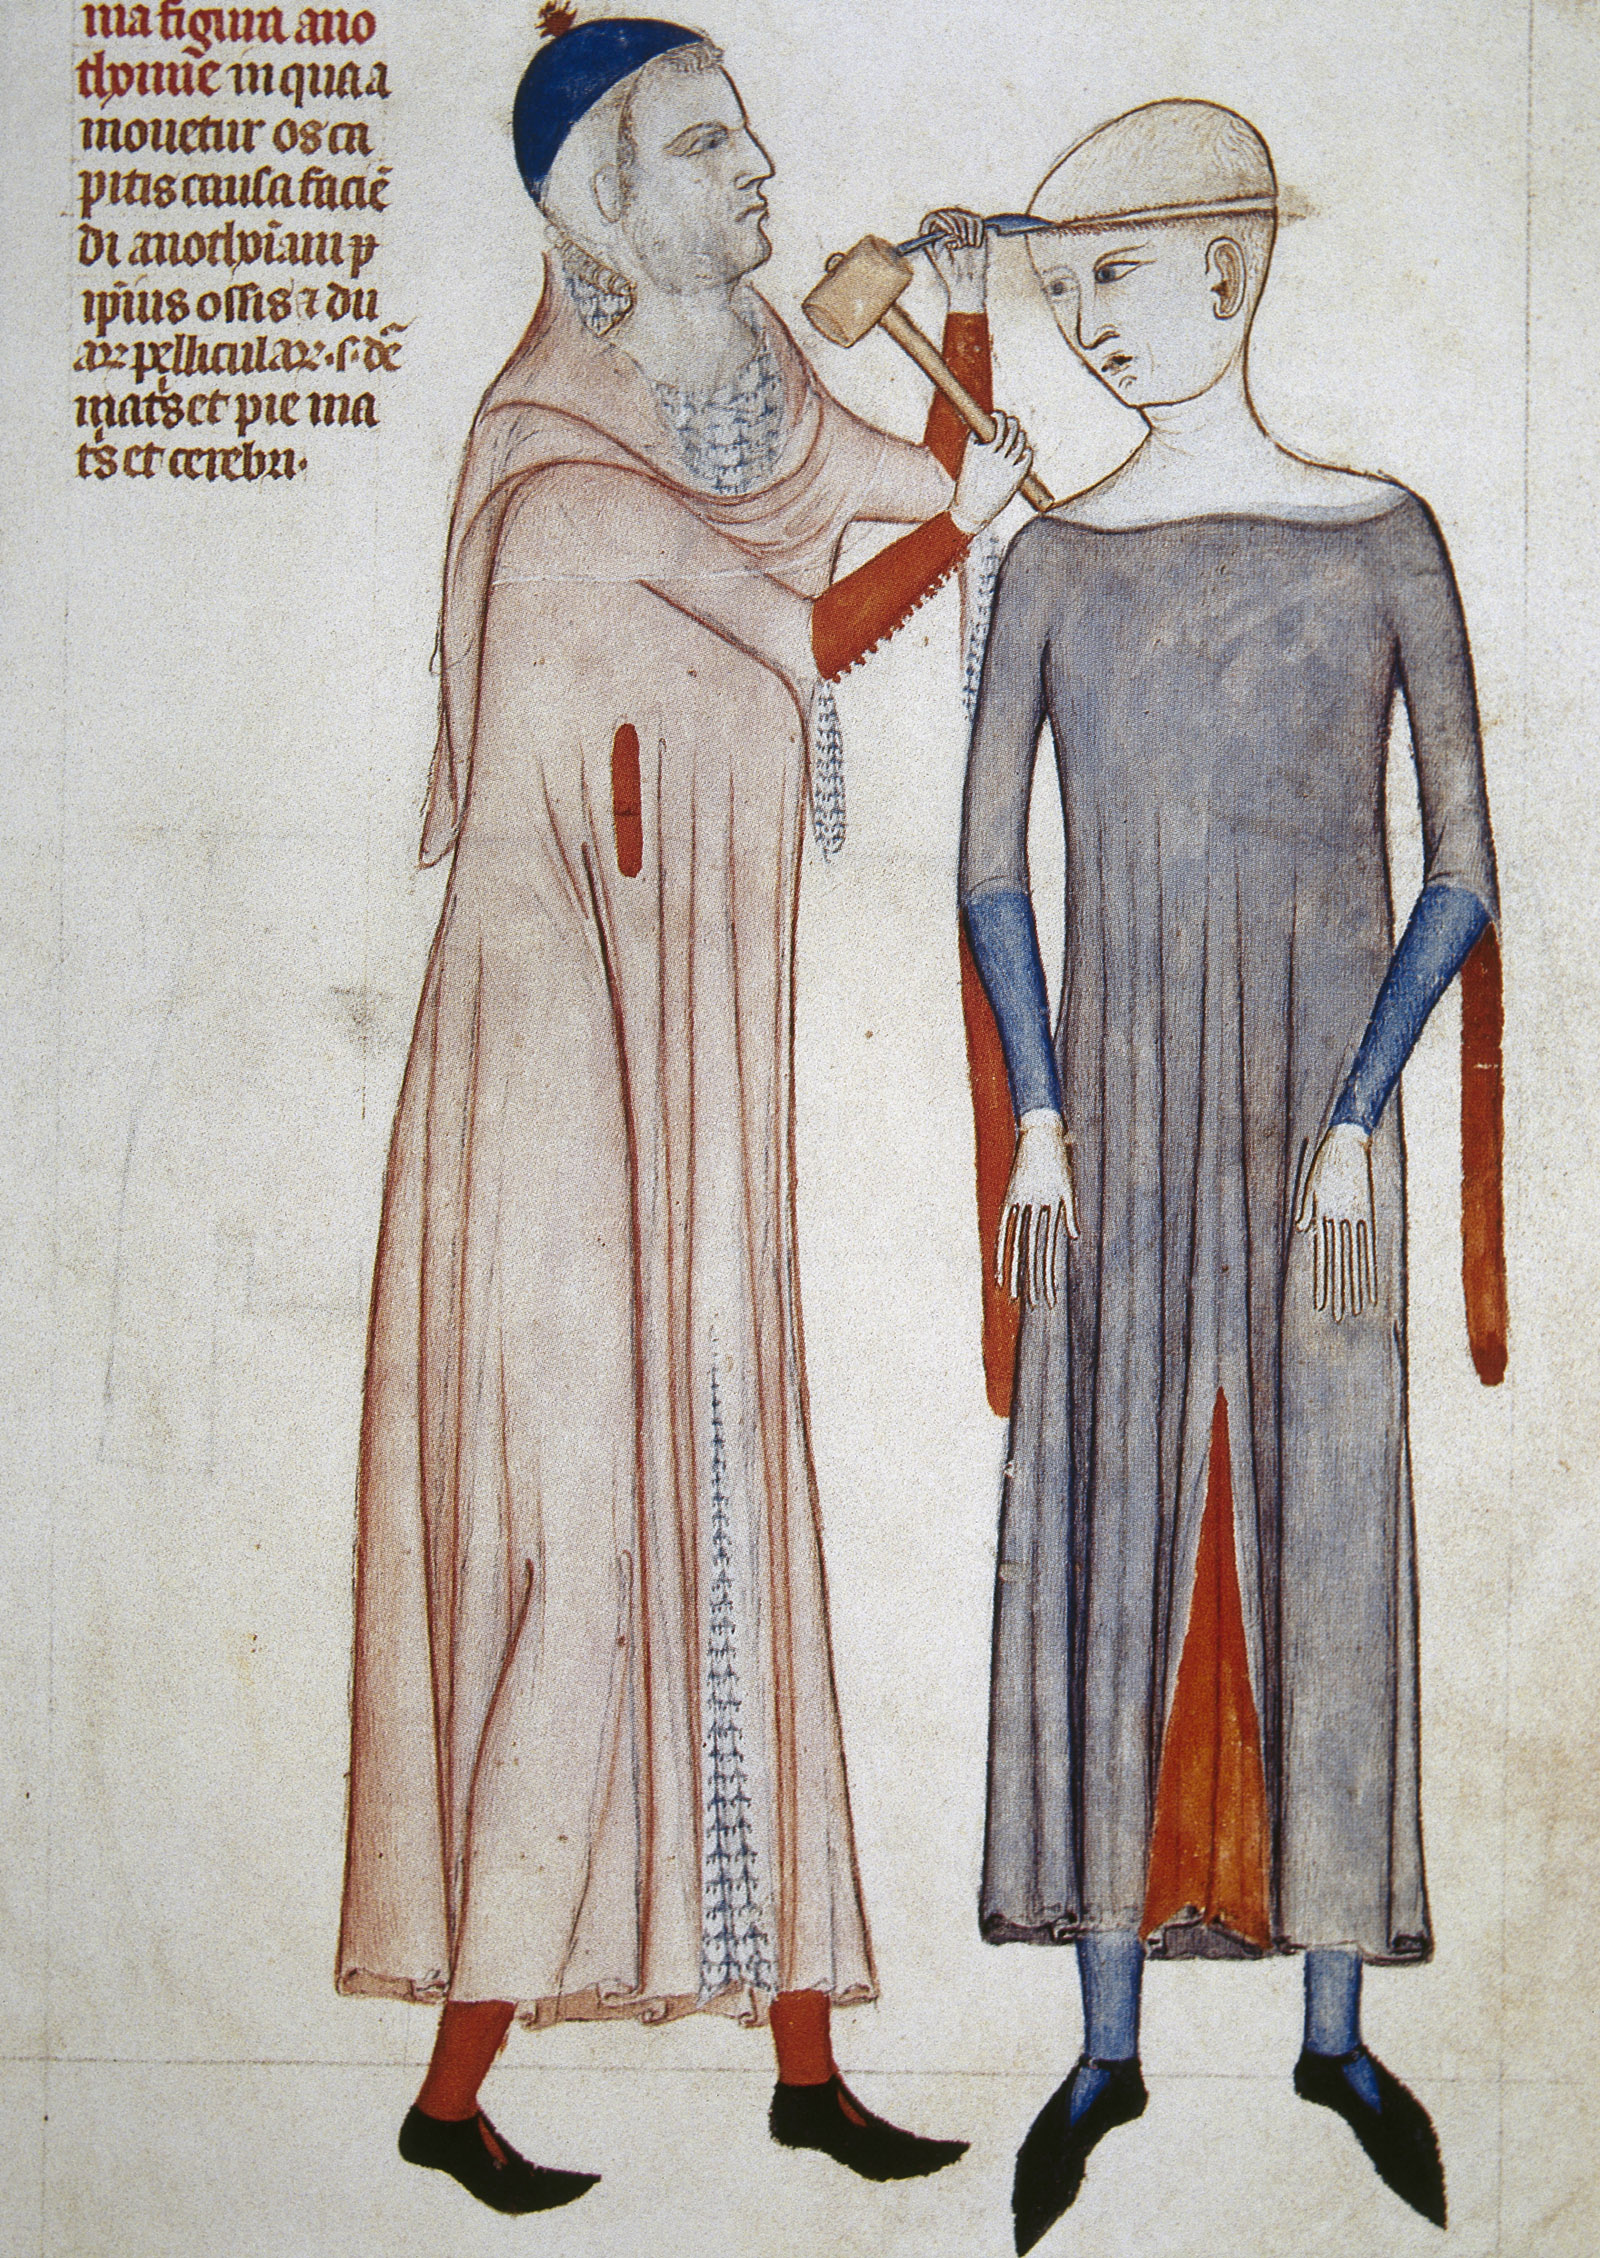 Illustration of trepanning from an anatomical treatise by the Italian physician Guido da Vigevano, 1345